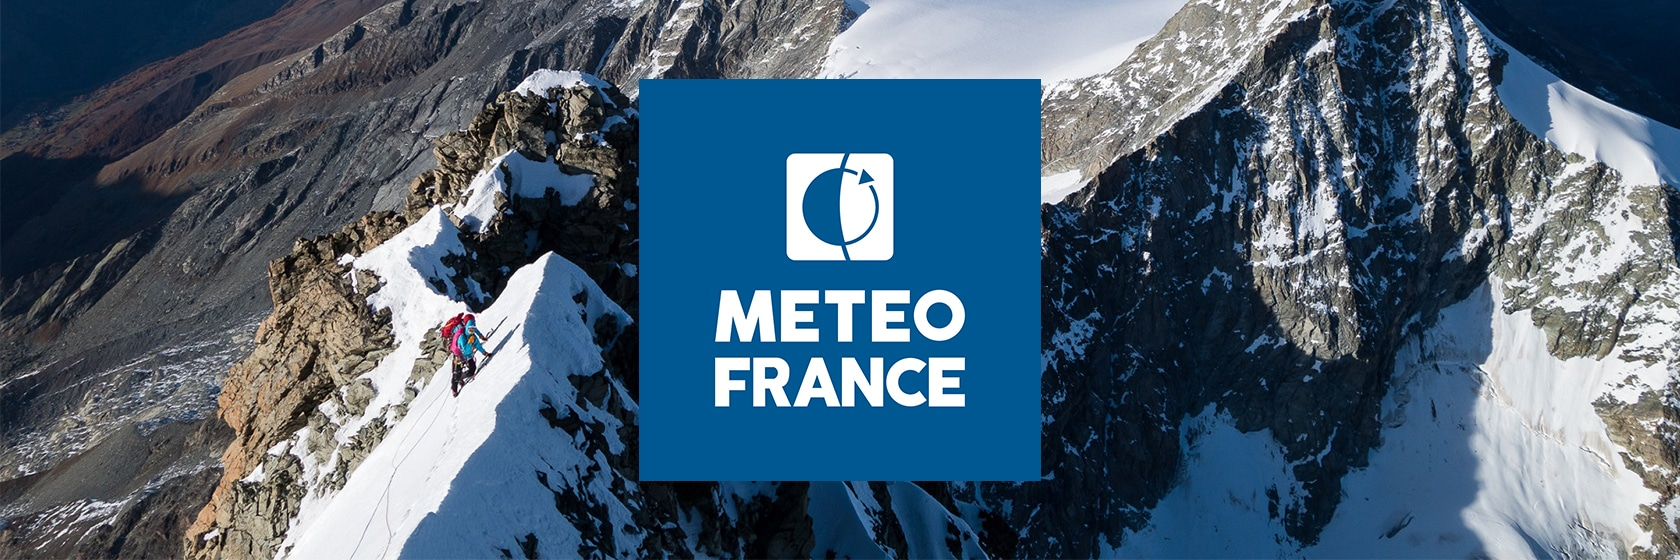 Production Météo-France en montagne